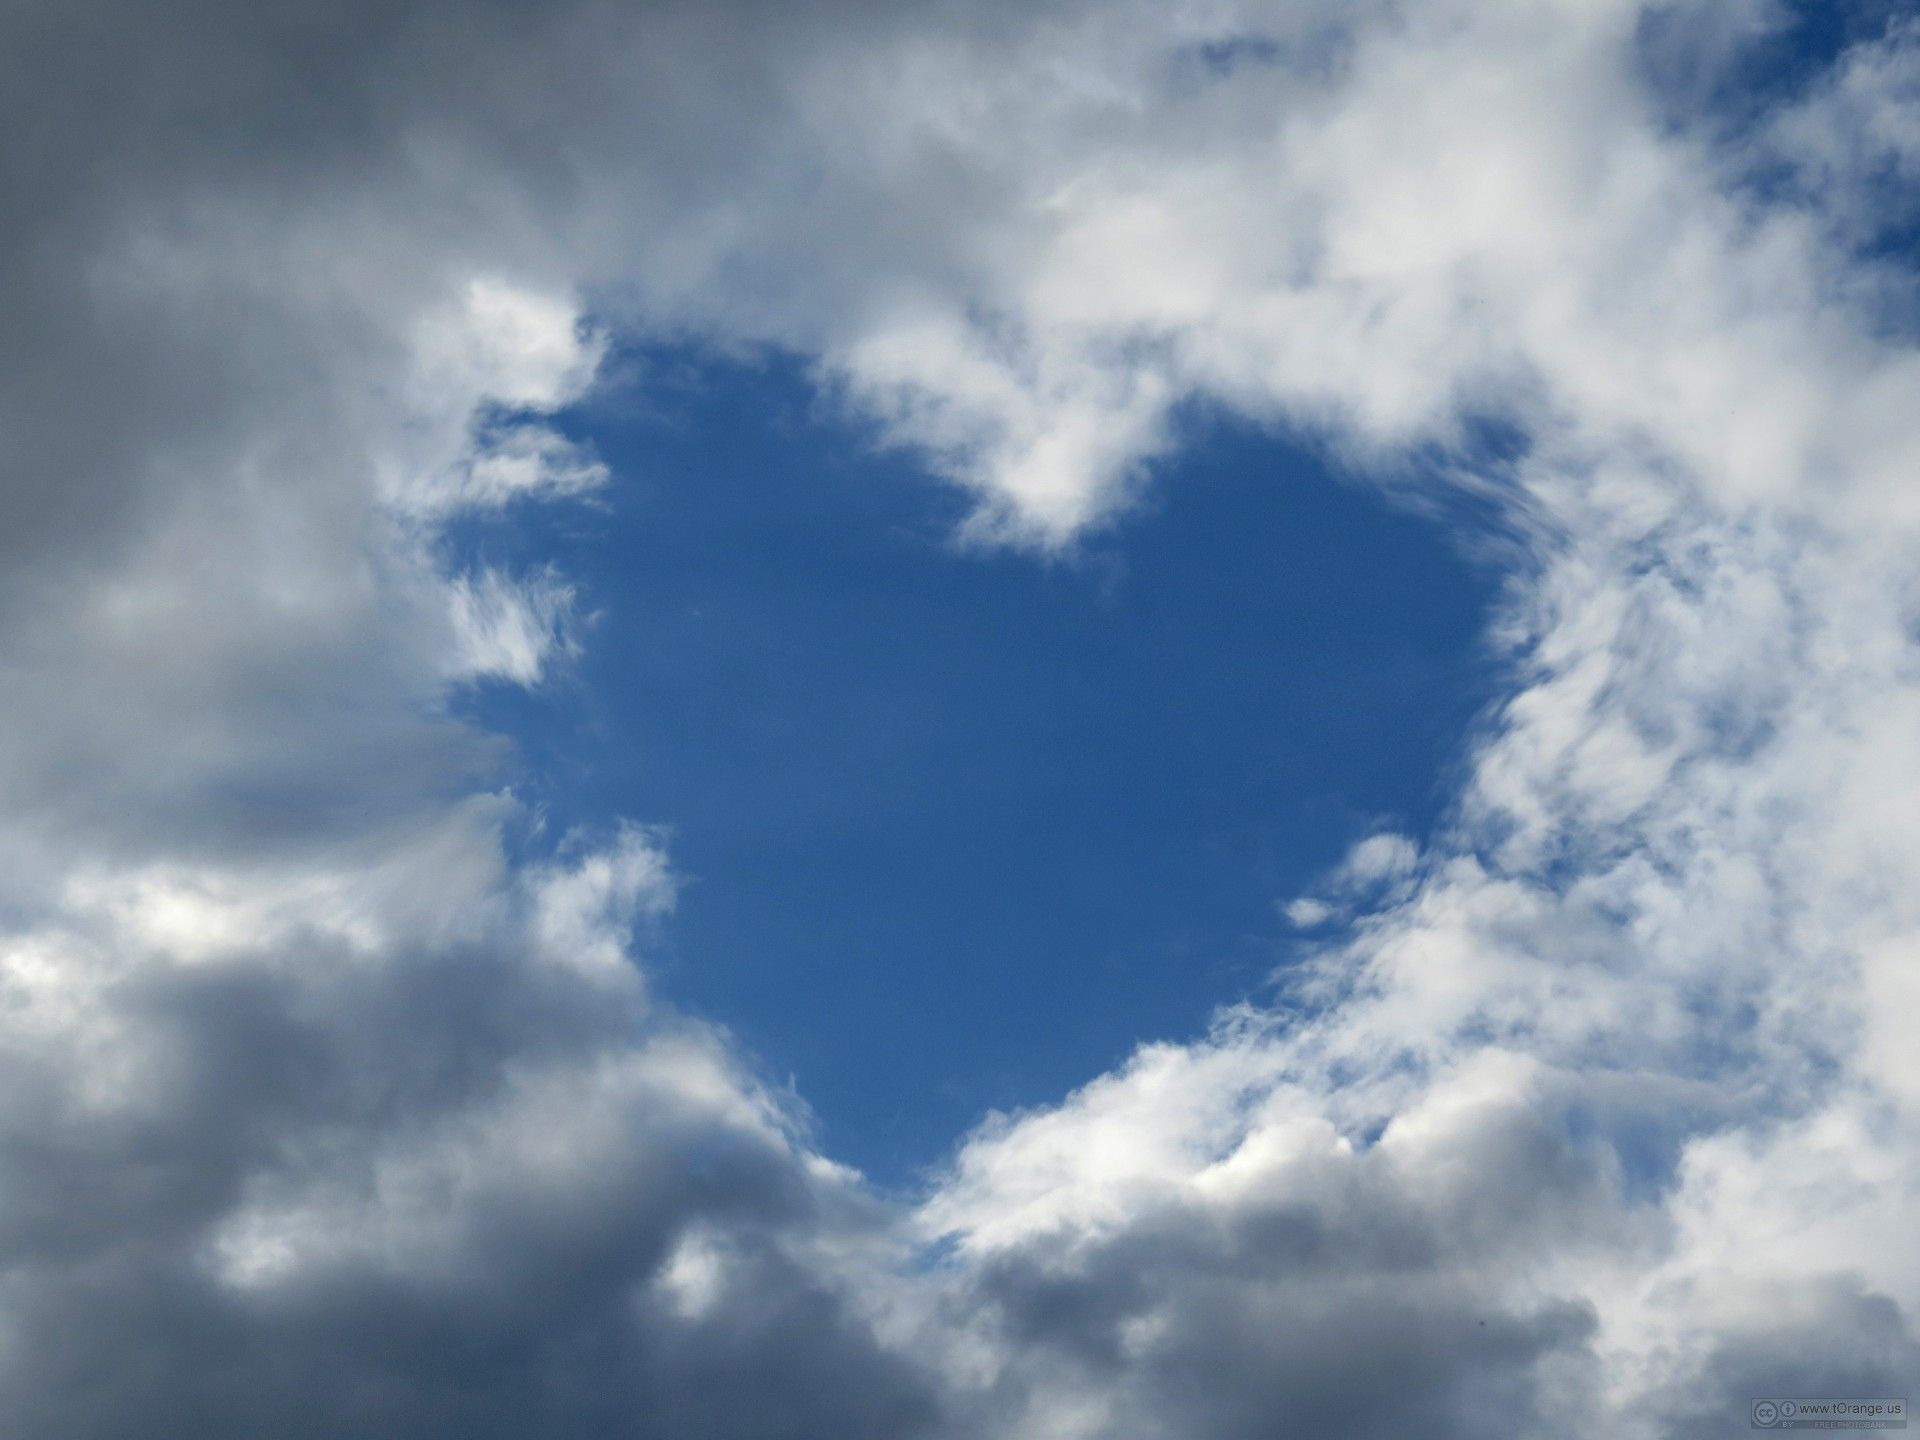 free photo: heart on heart clouds shows romantic heaven or in love